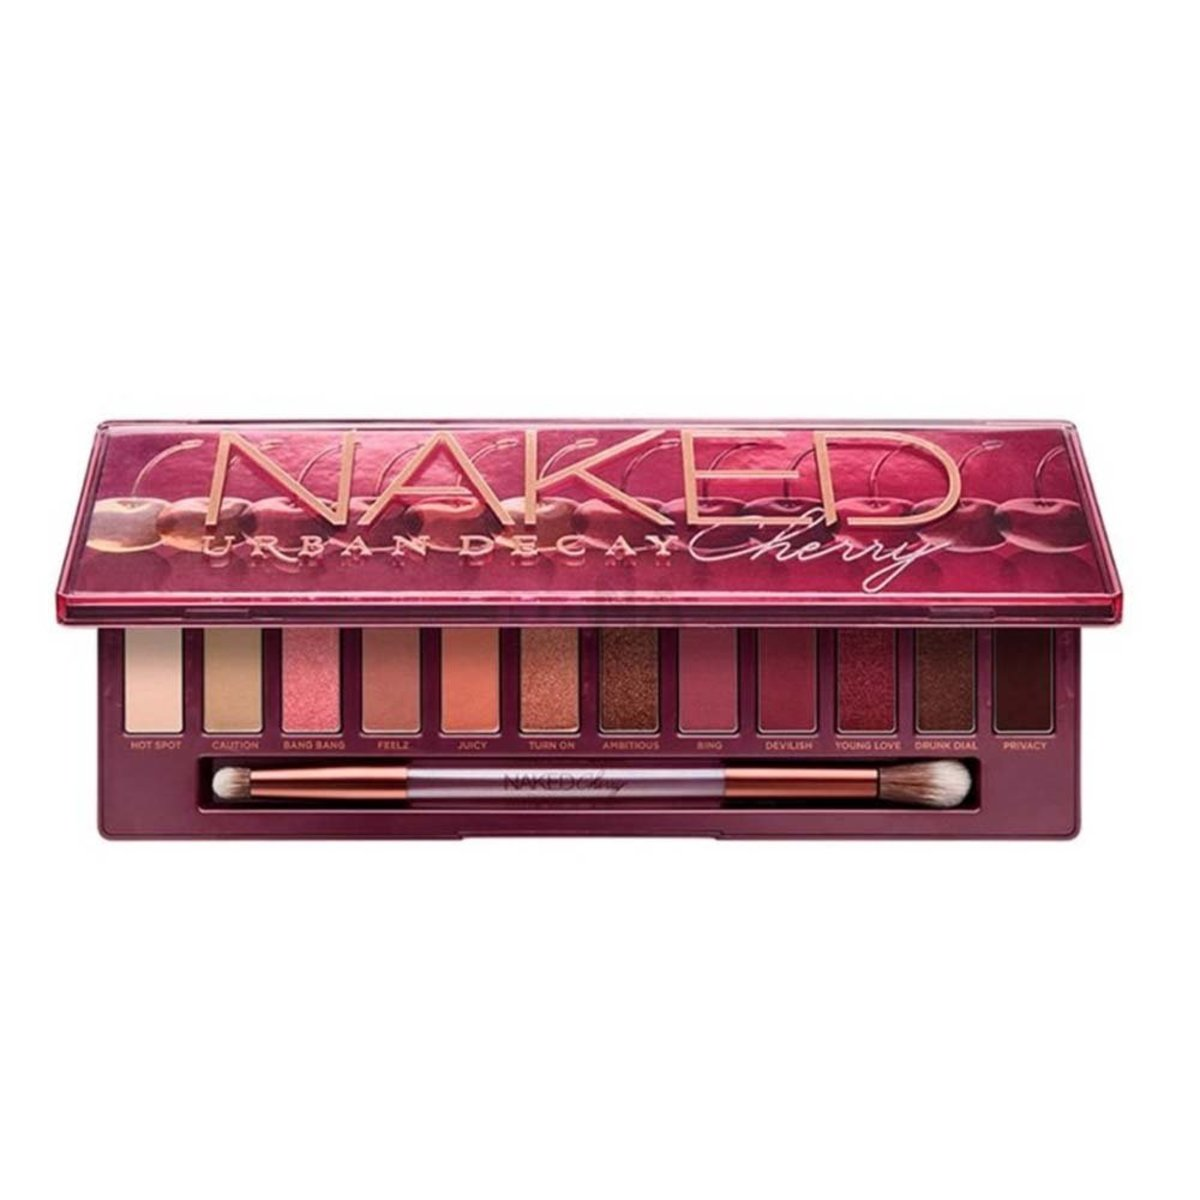 Naked Cherry 12 colors Eyeshadow Palette  [Limited Edition]